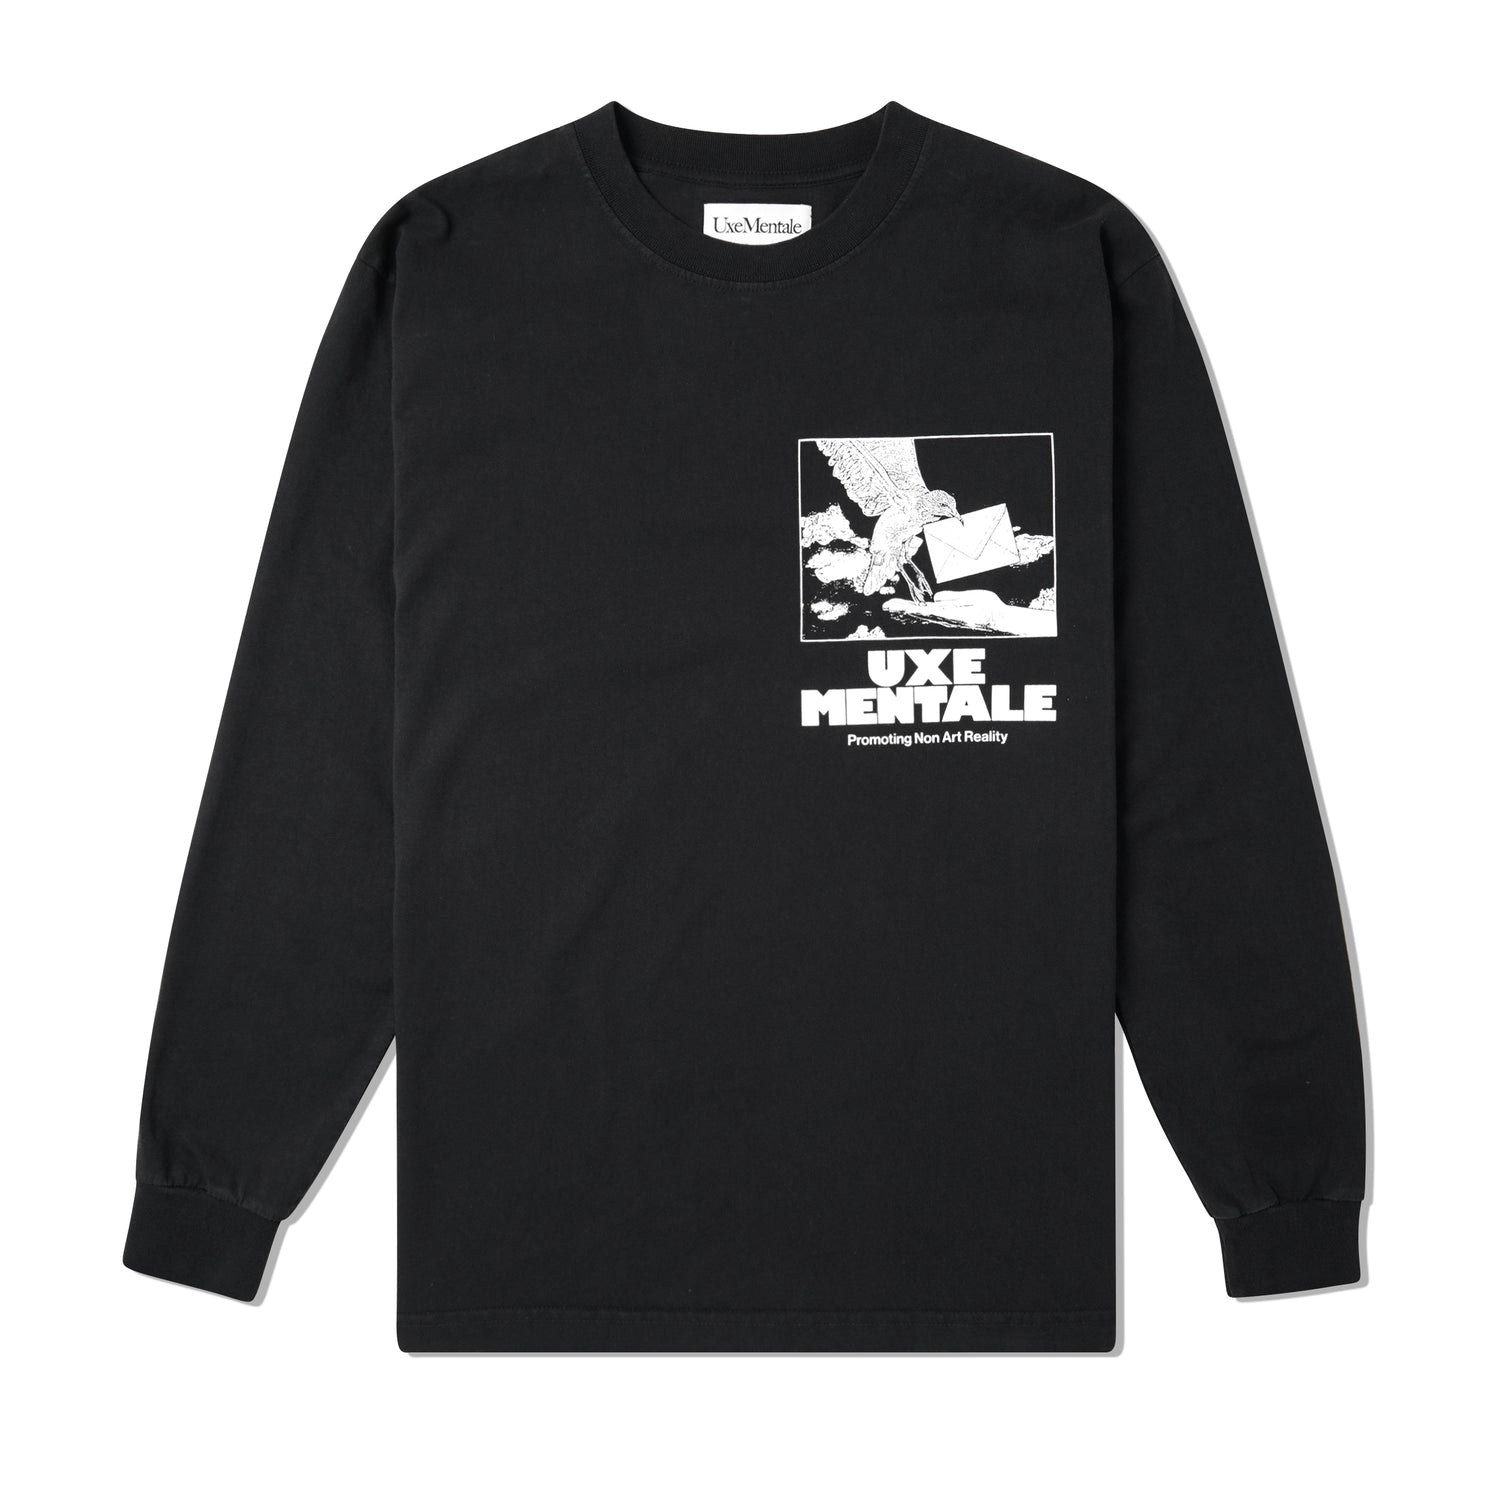 Non Art Reality L/S Tee, Washed Black